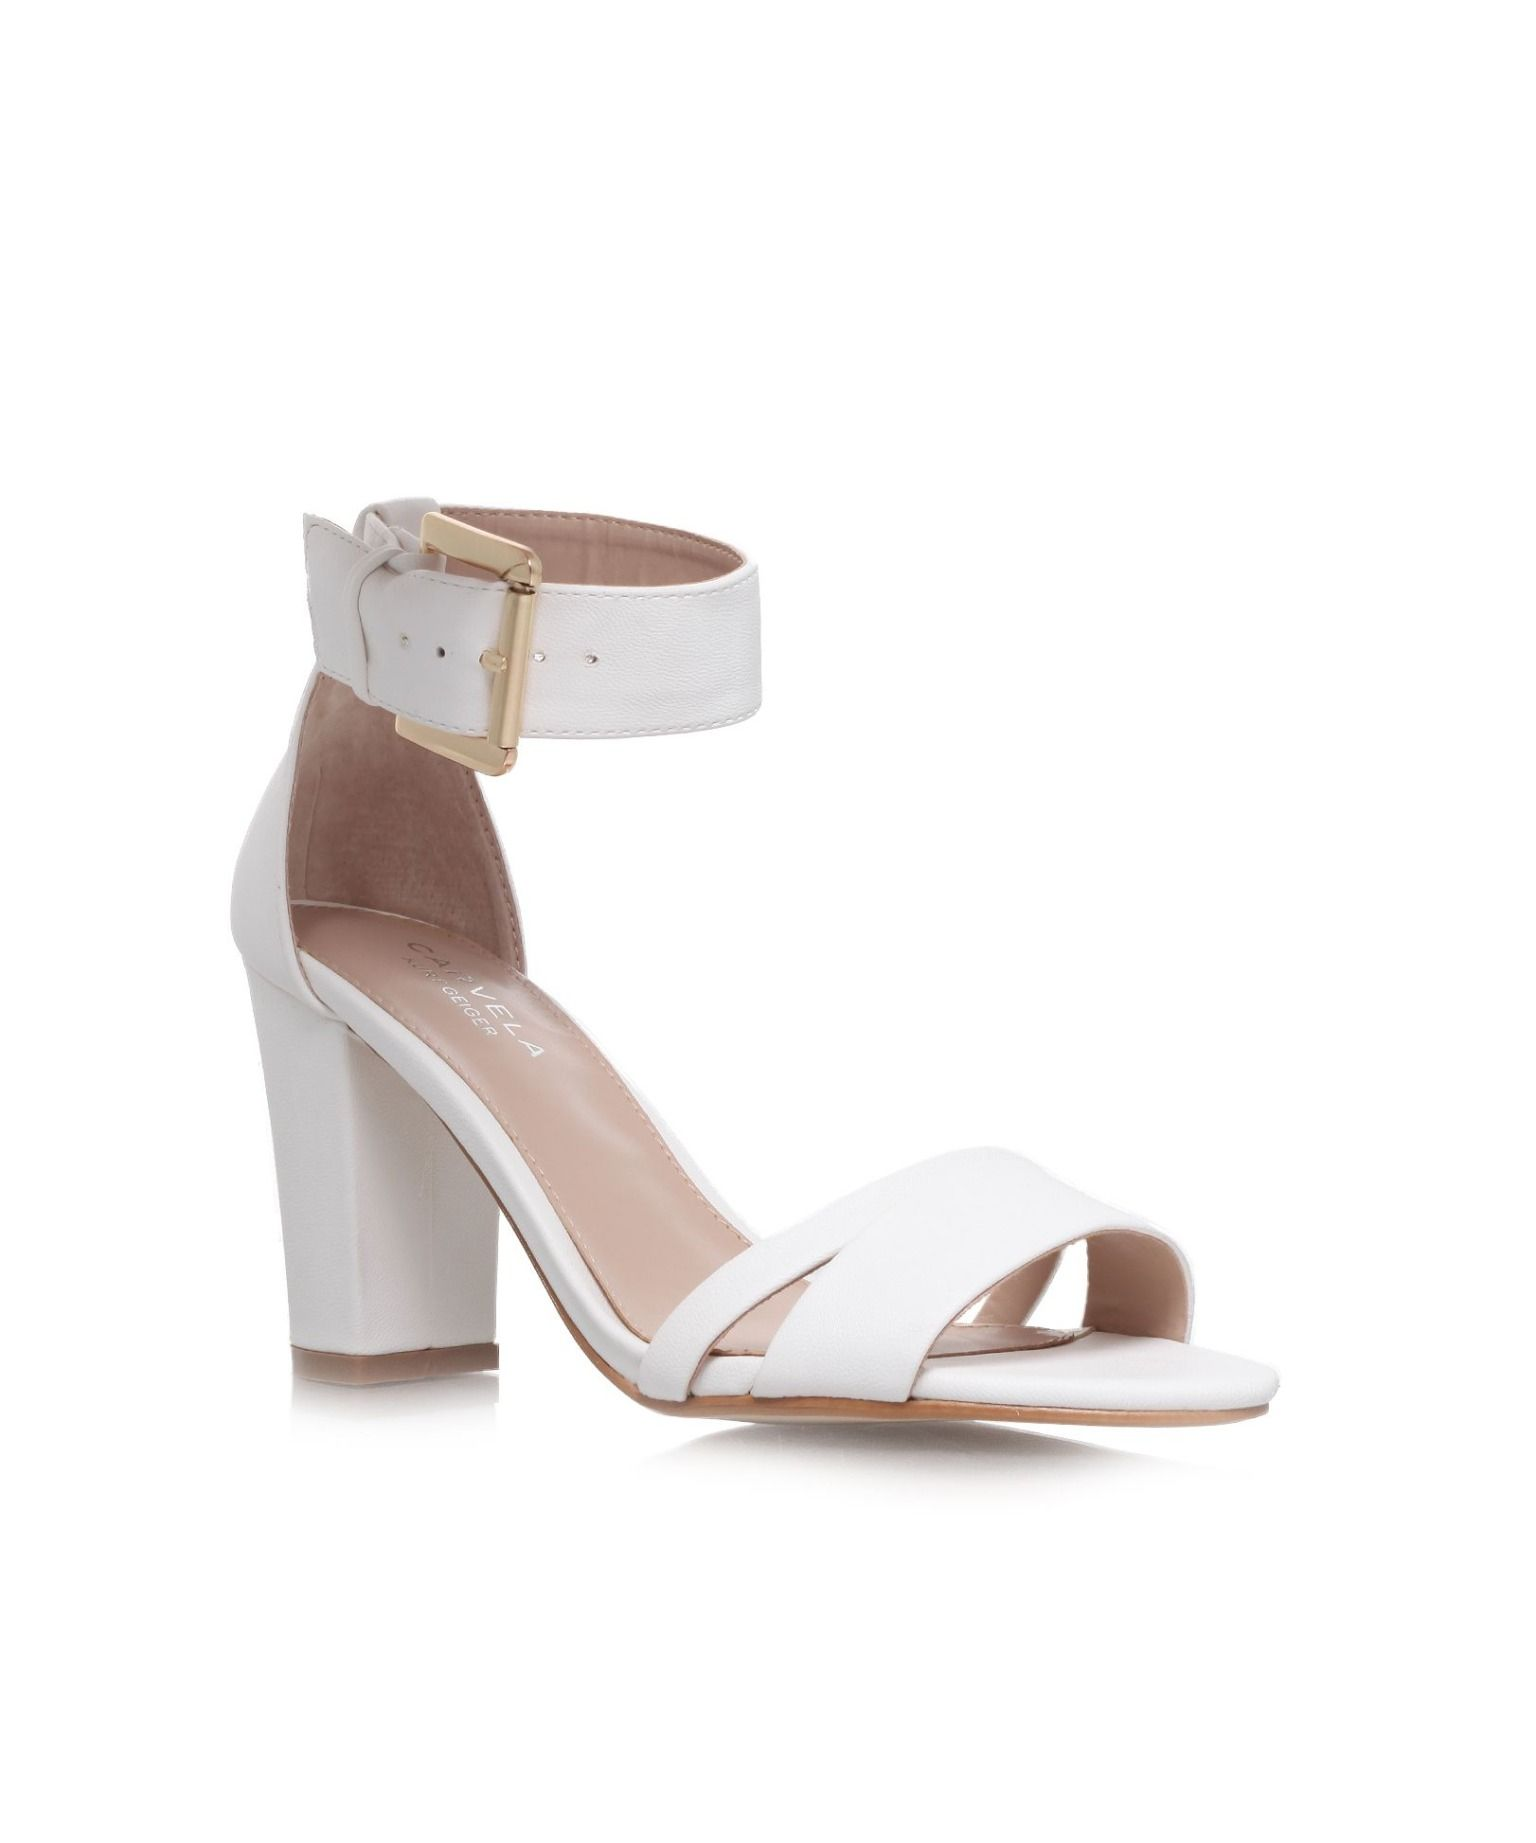 9c32800b53 Carvela Carly high heel sandals, White | STYLE: Women | Carvela kurt ...